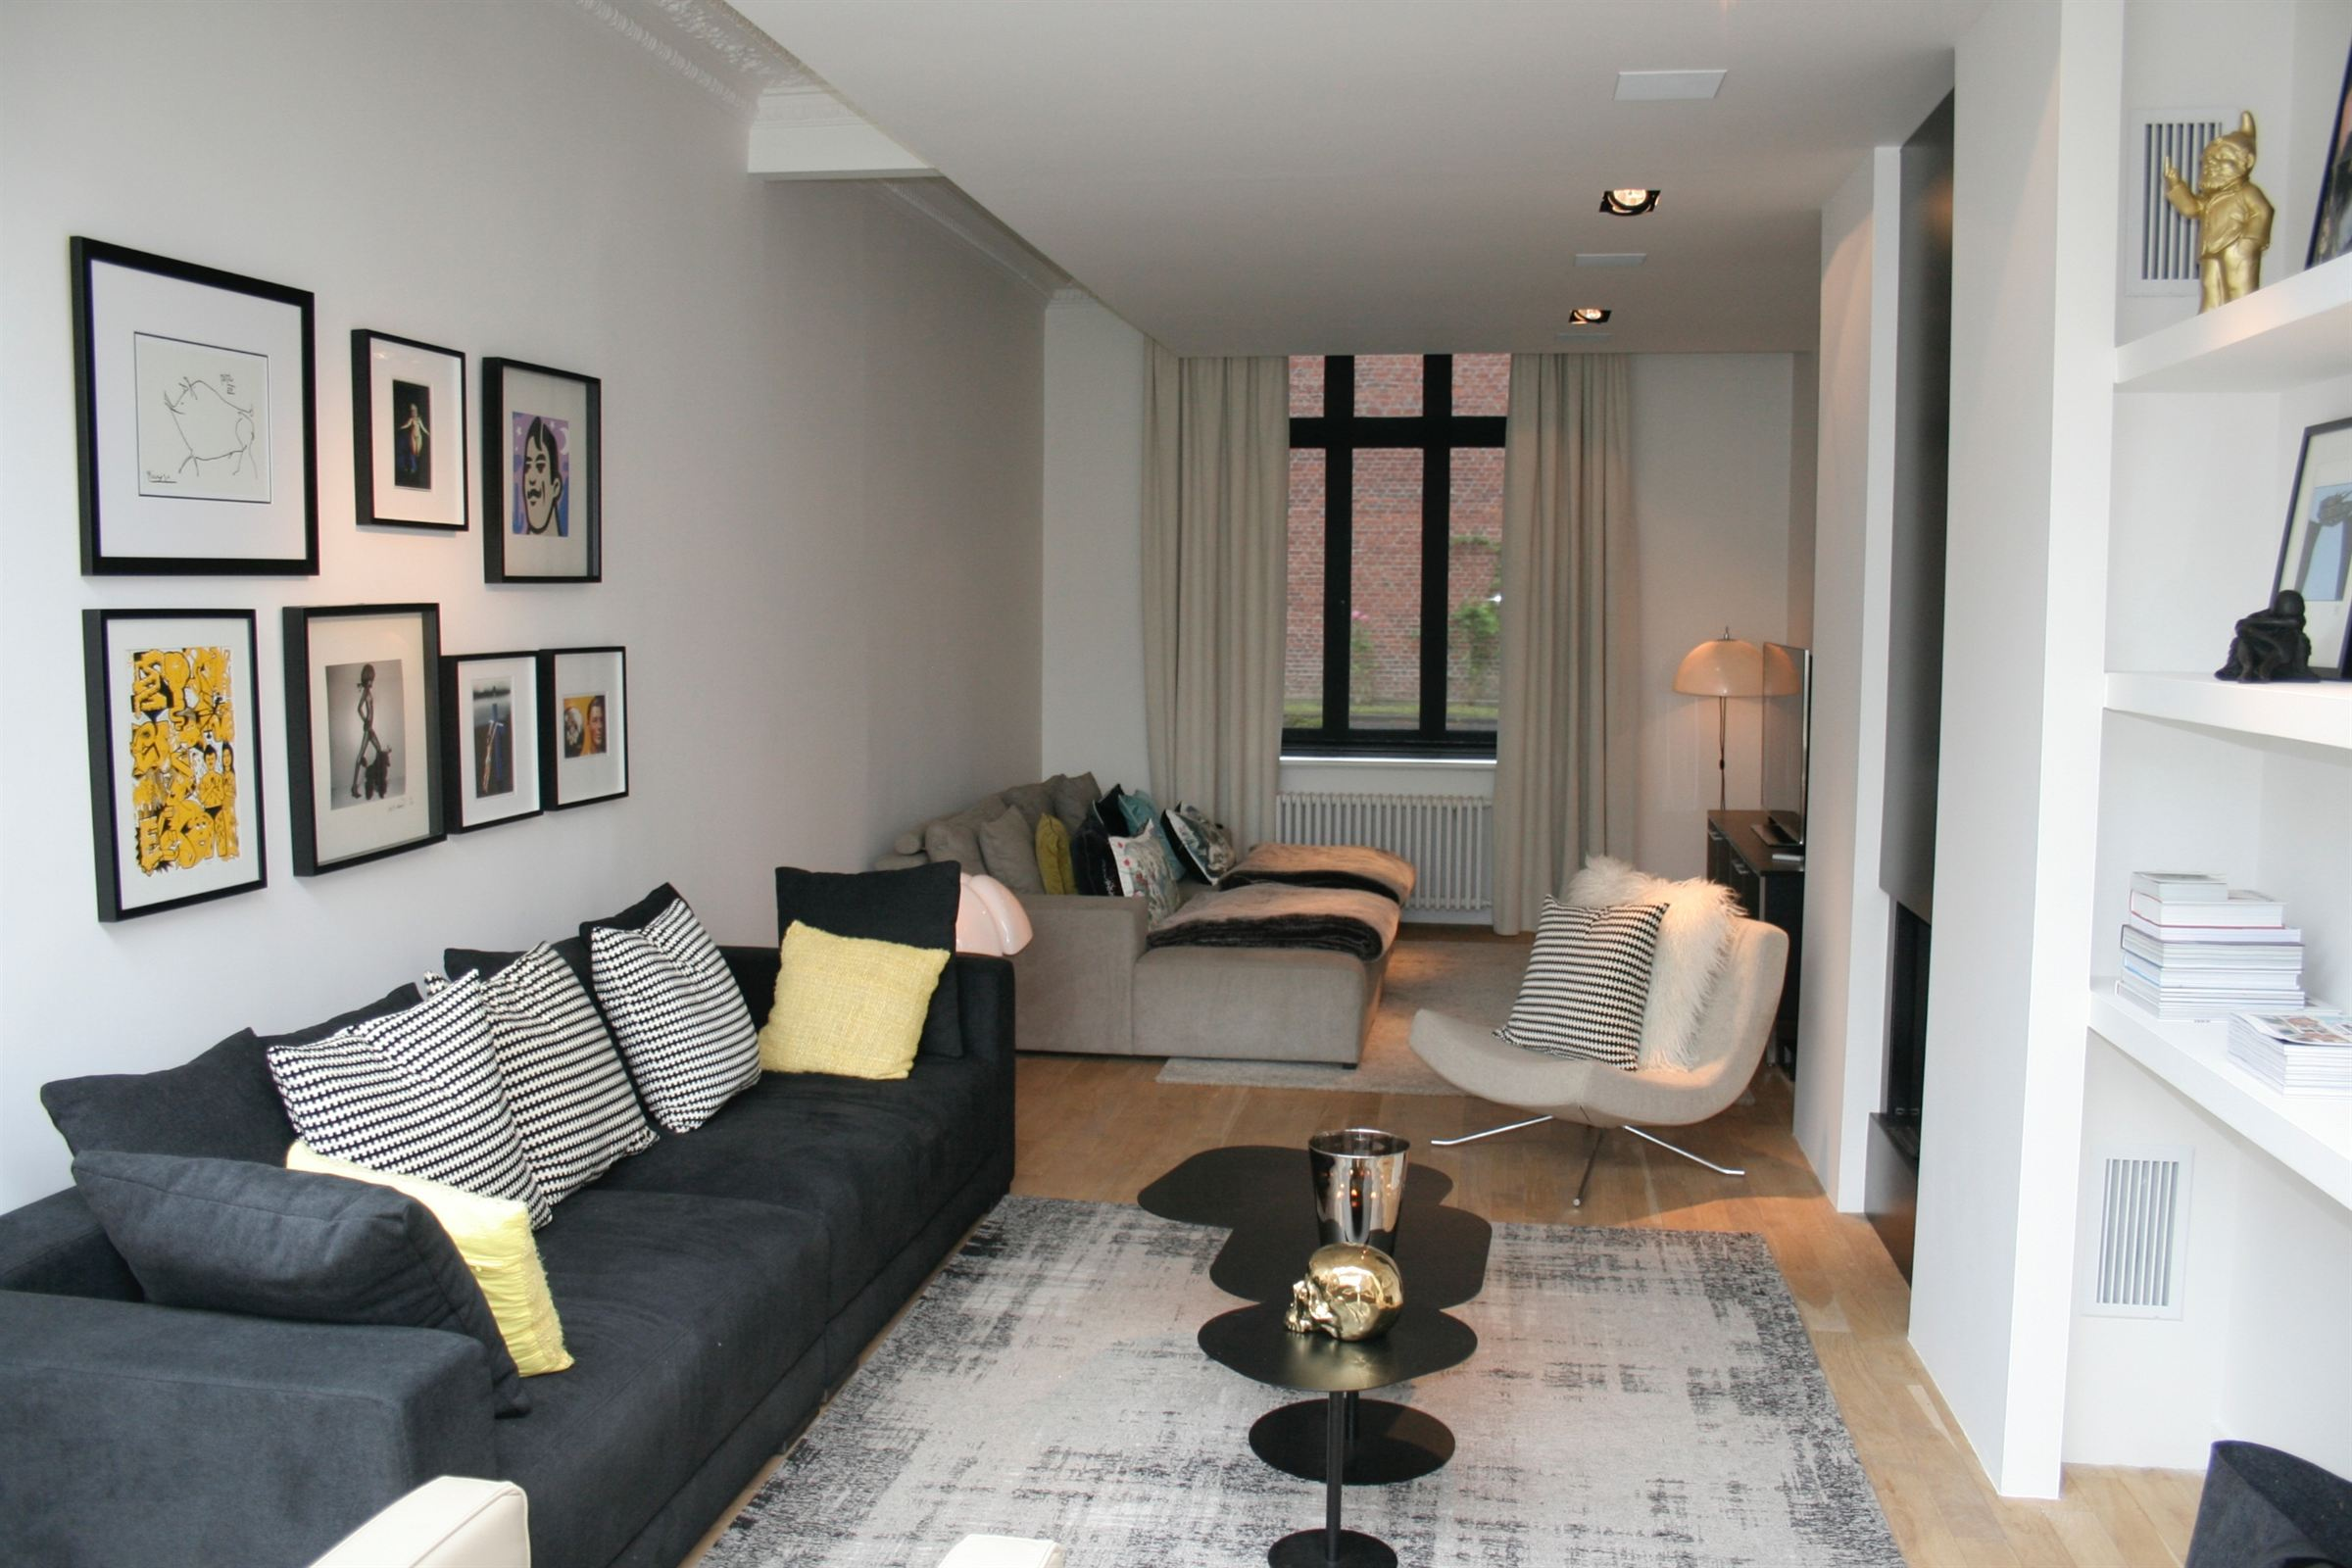 Property For Sale at MOUVAUX Center, Town house renovated 280m2 hab.